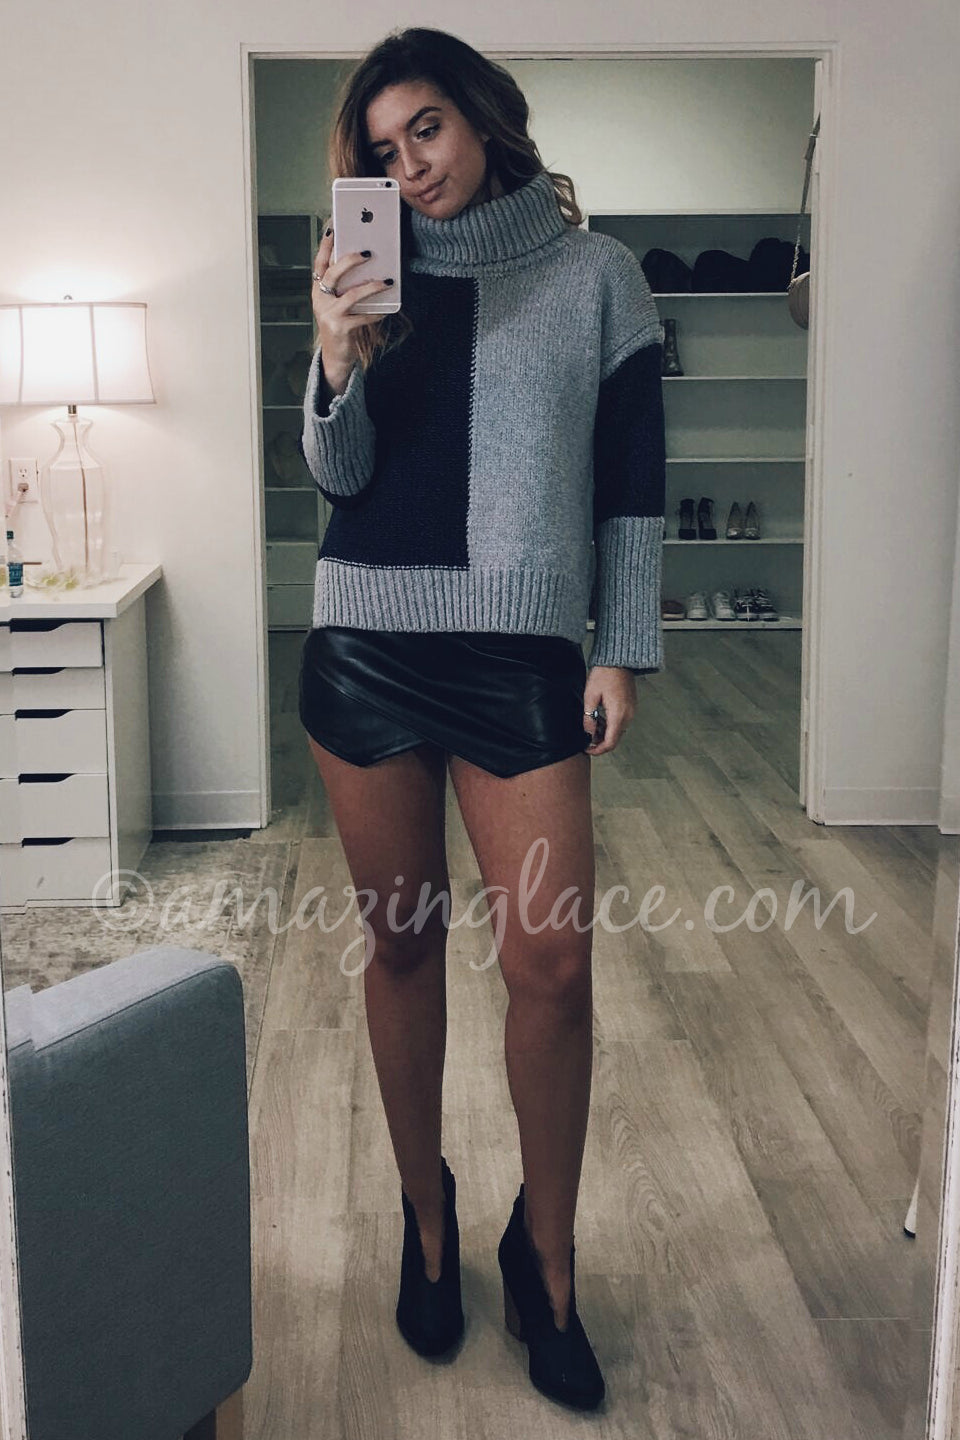 BLUE SWEATER AND BLACK SKORT OUTFIT